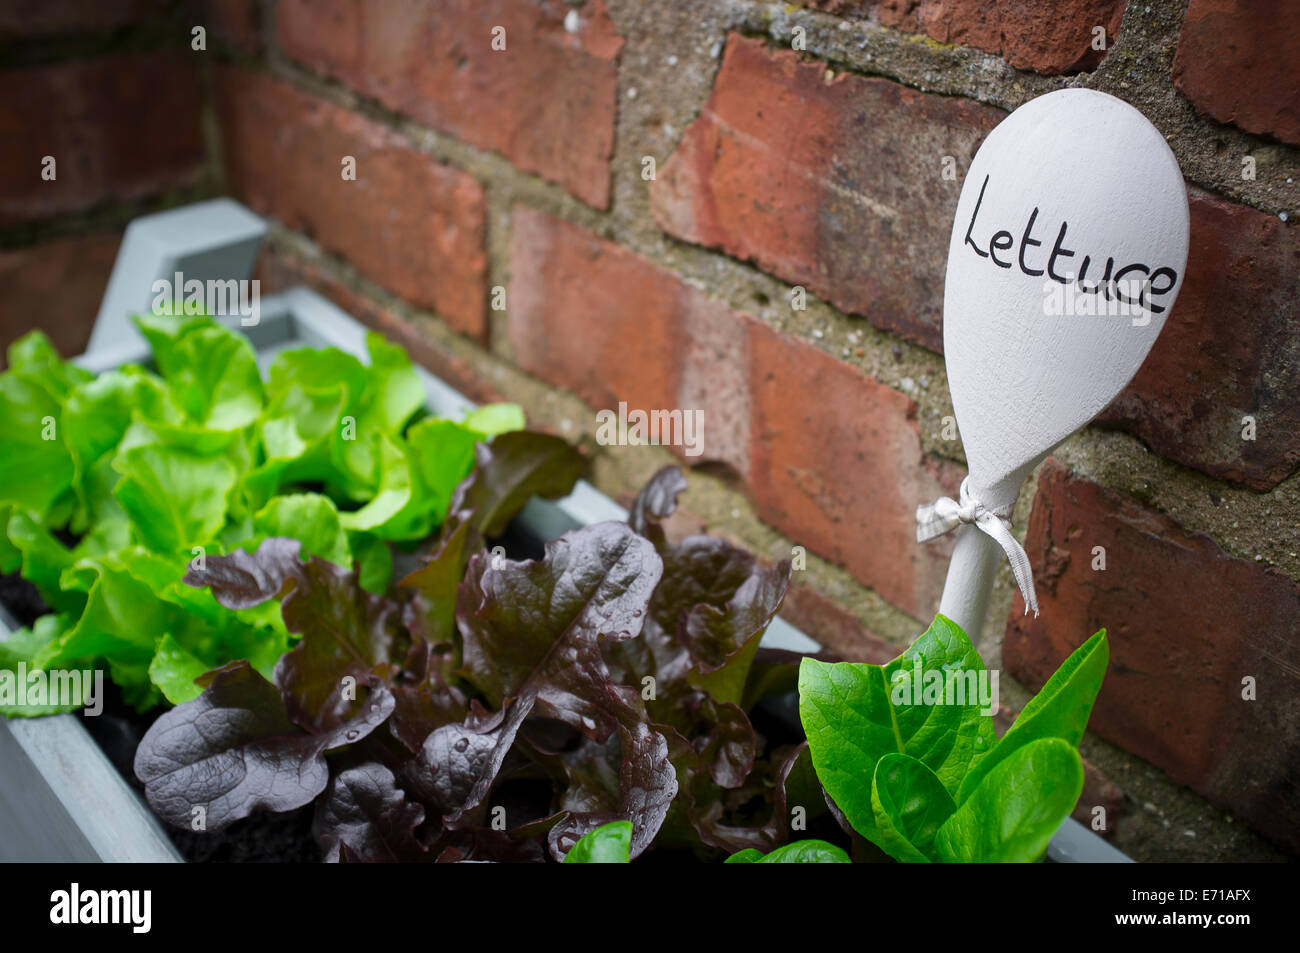 Young lettuce plants being grown in a window box. - Stock Image